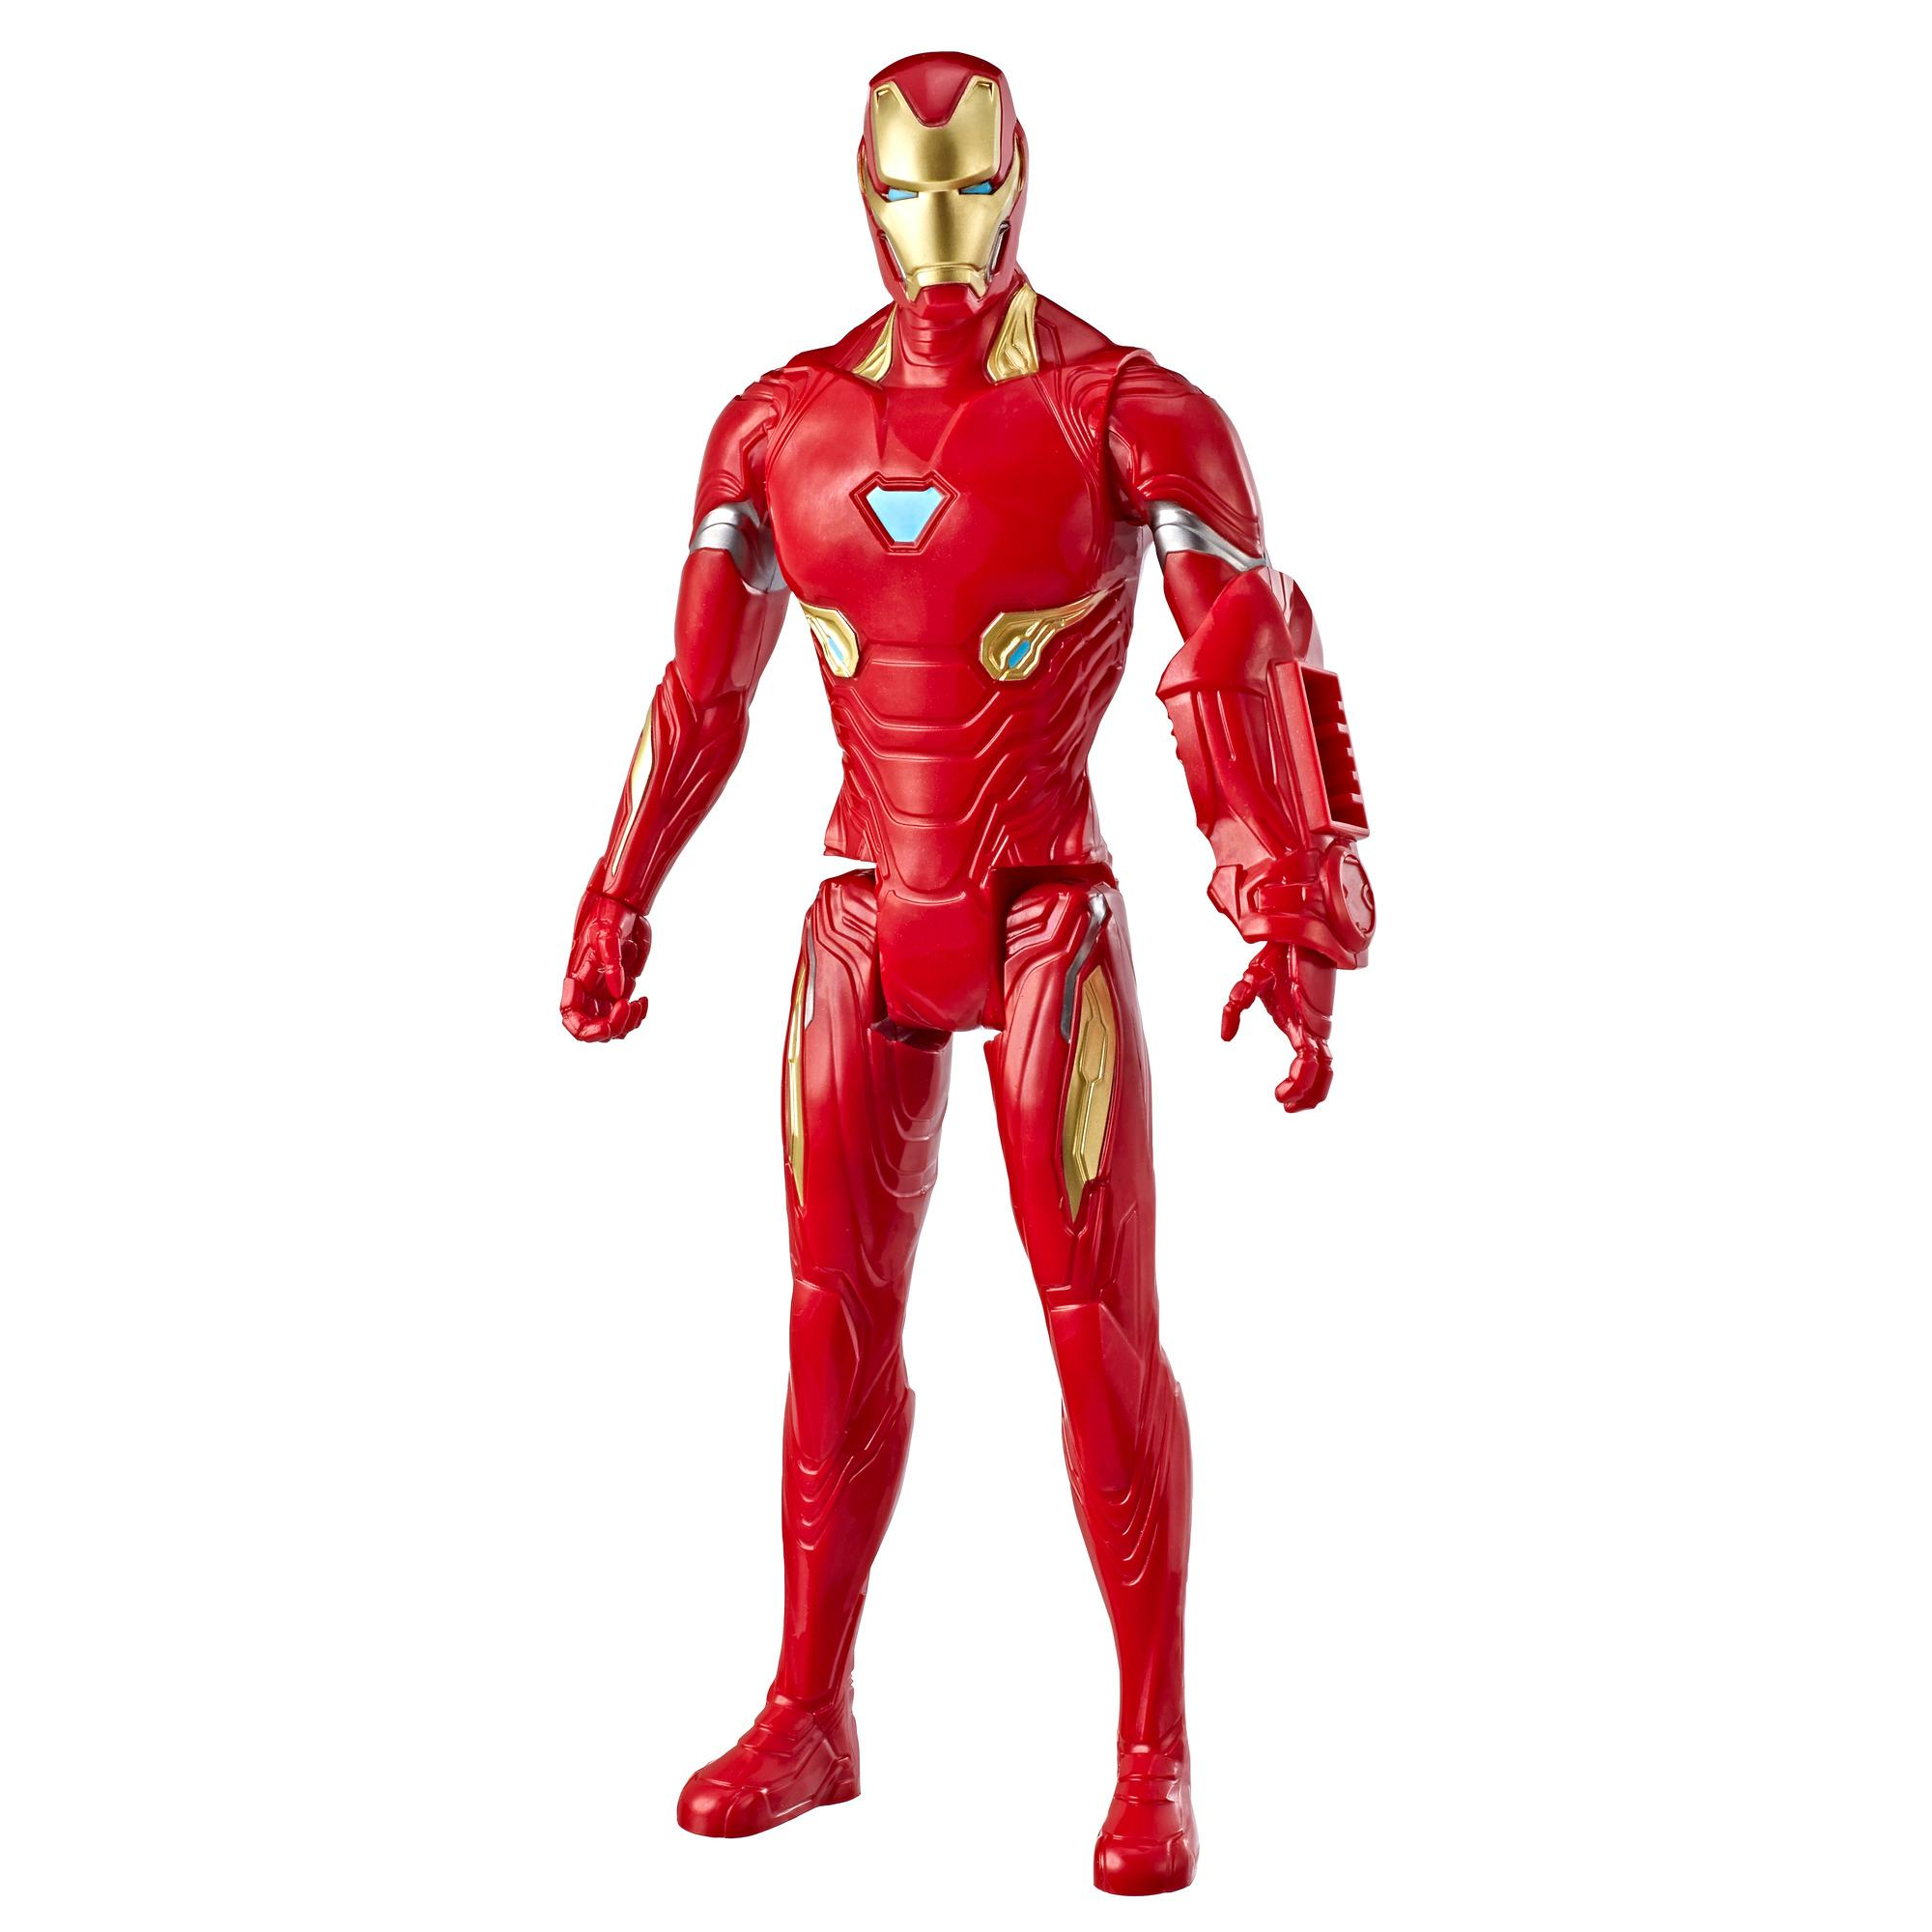 Avengers Endgame Titan Hero Iron Man